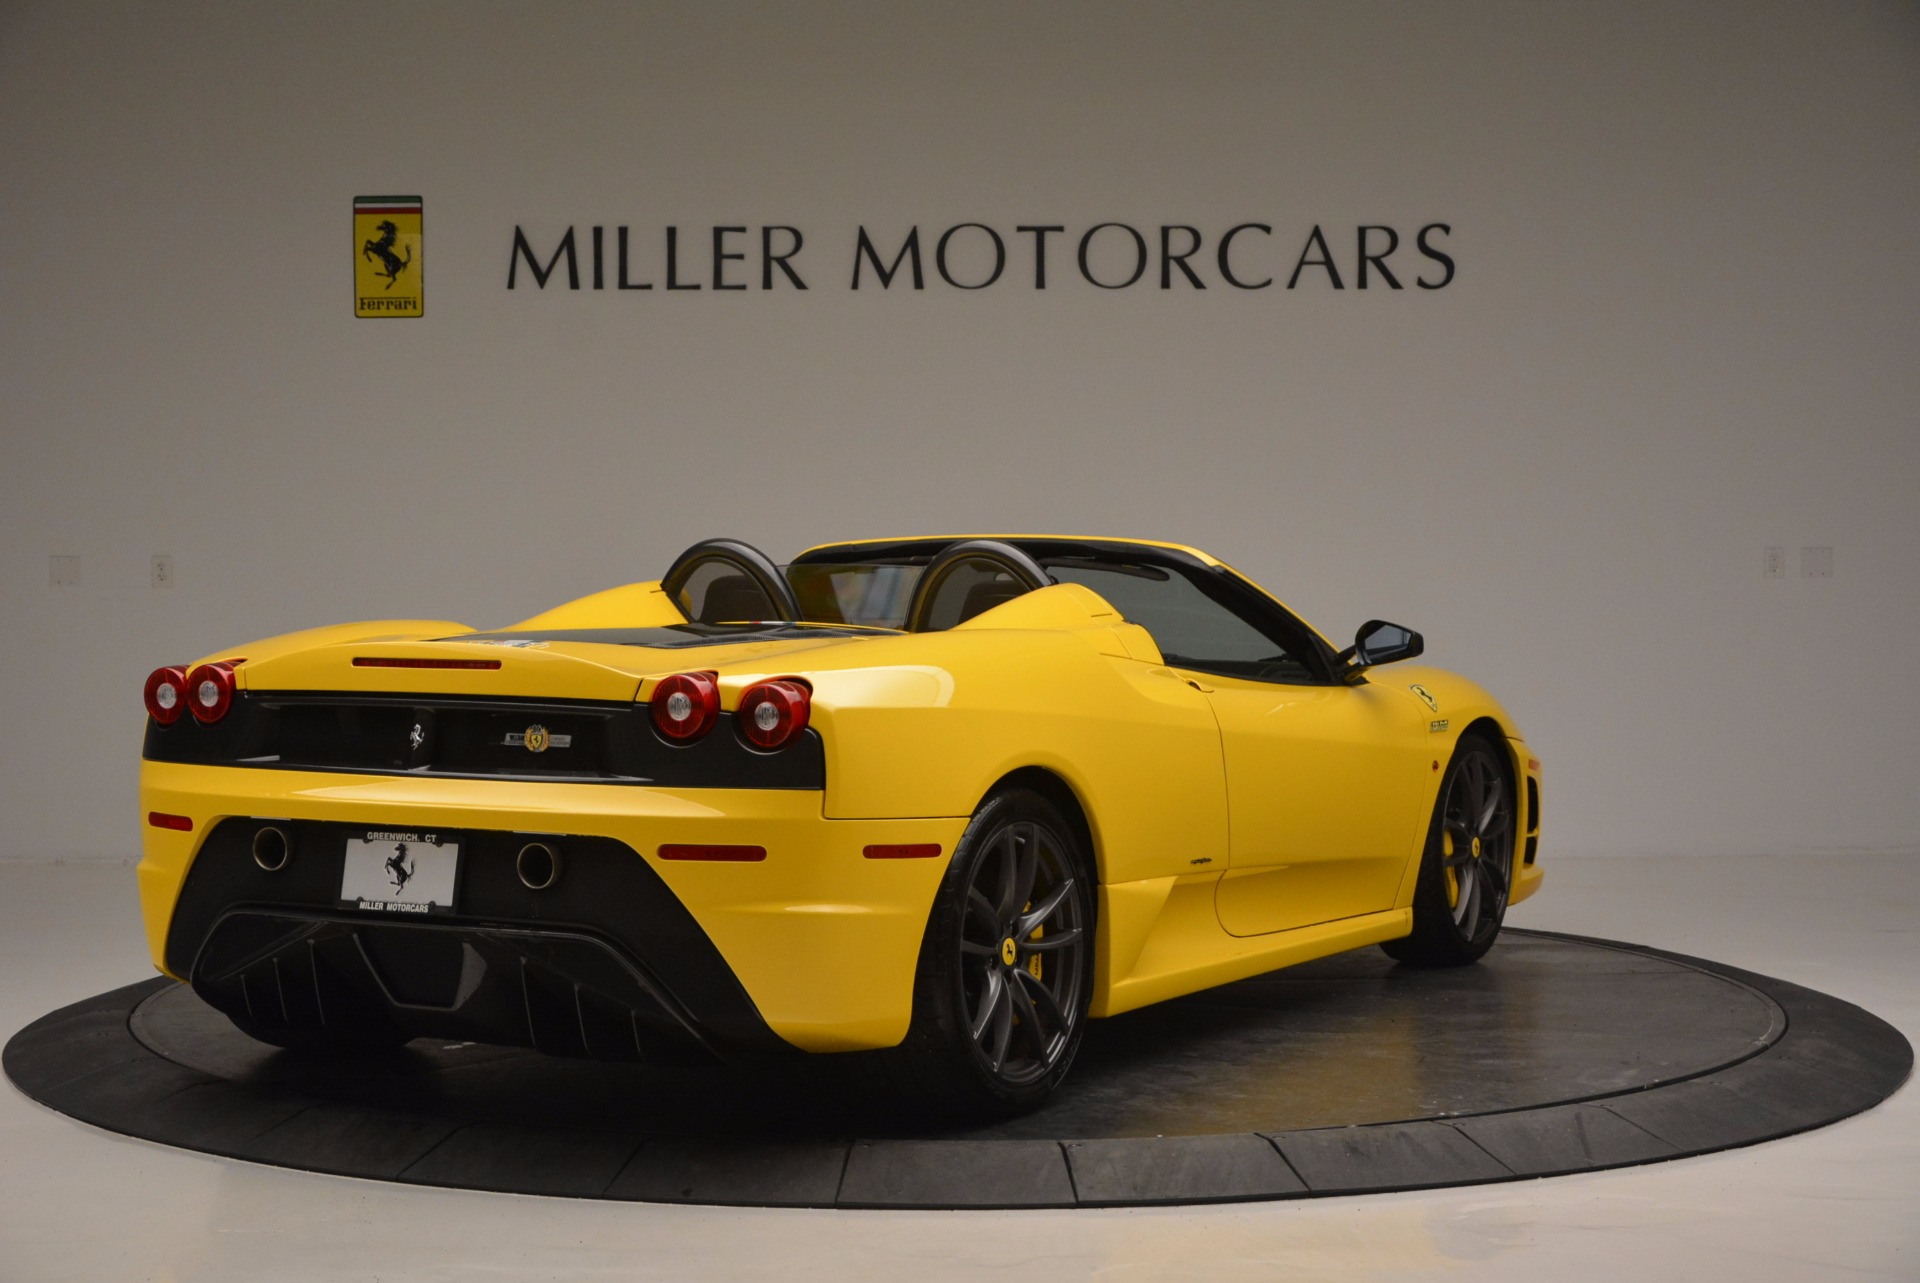 Used 2009 Ferrari F430 Scuderia 16M For Sale In Greenwich, CT 856_p7